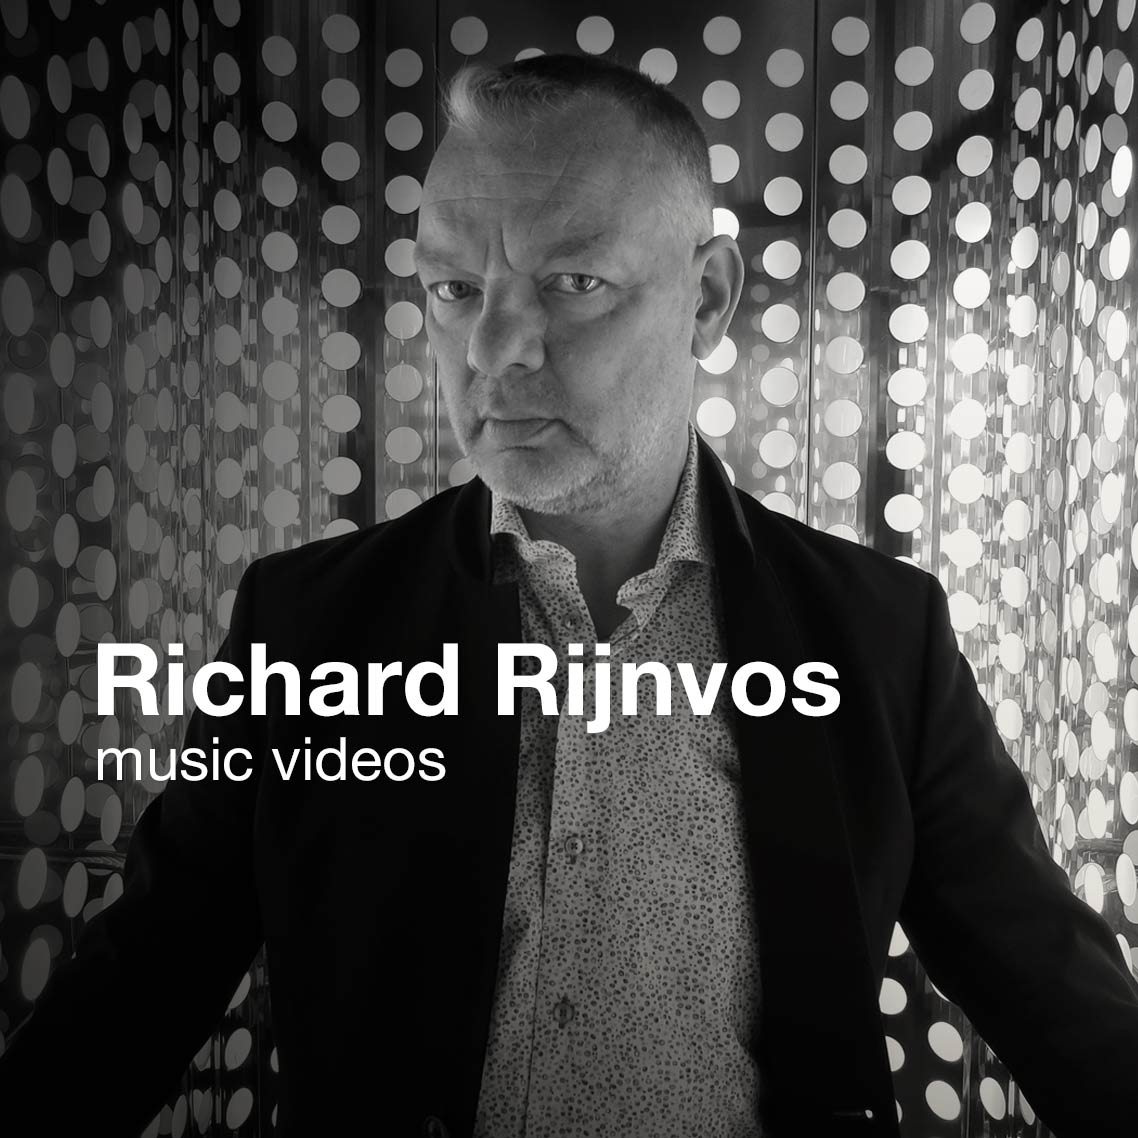 Richard Rijnvos | music videos